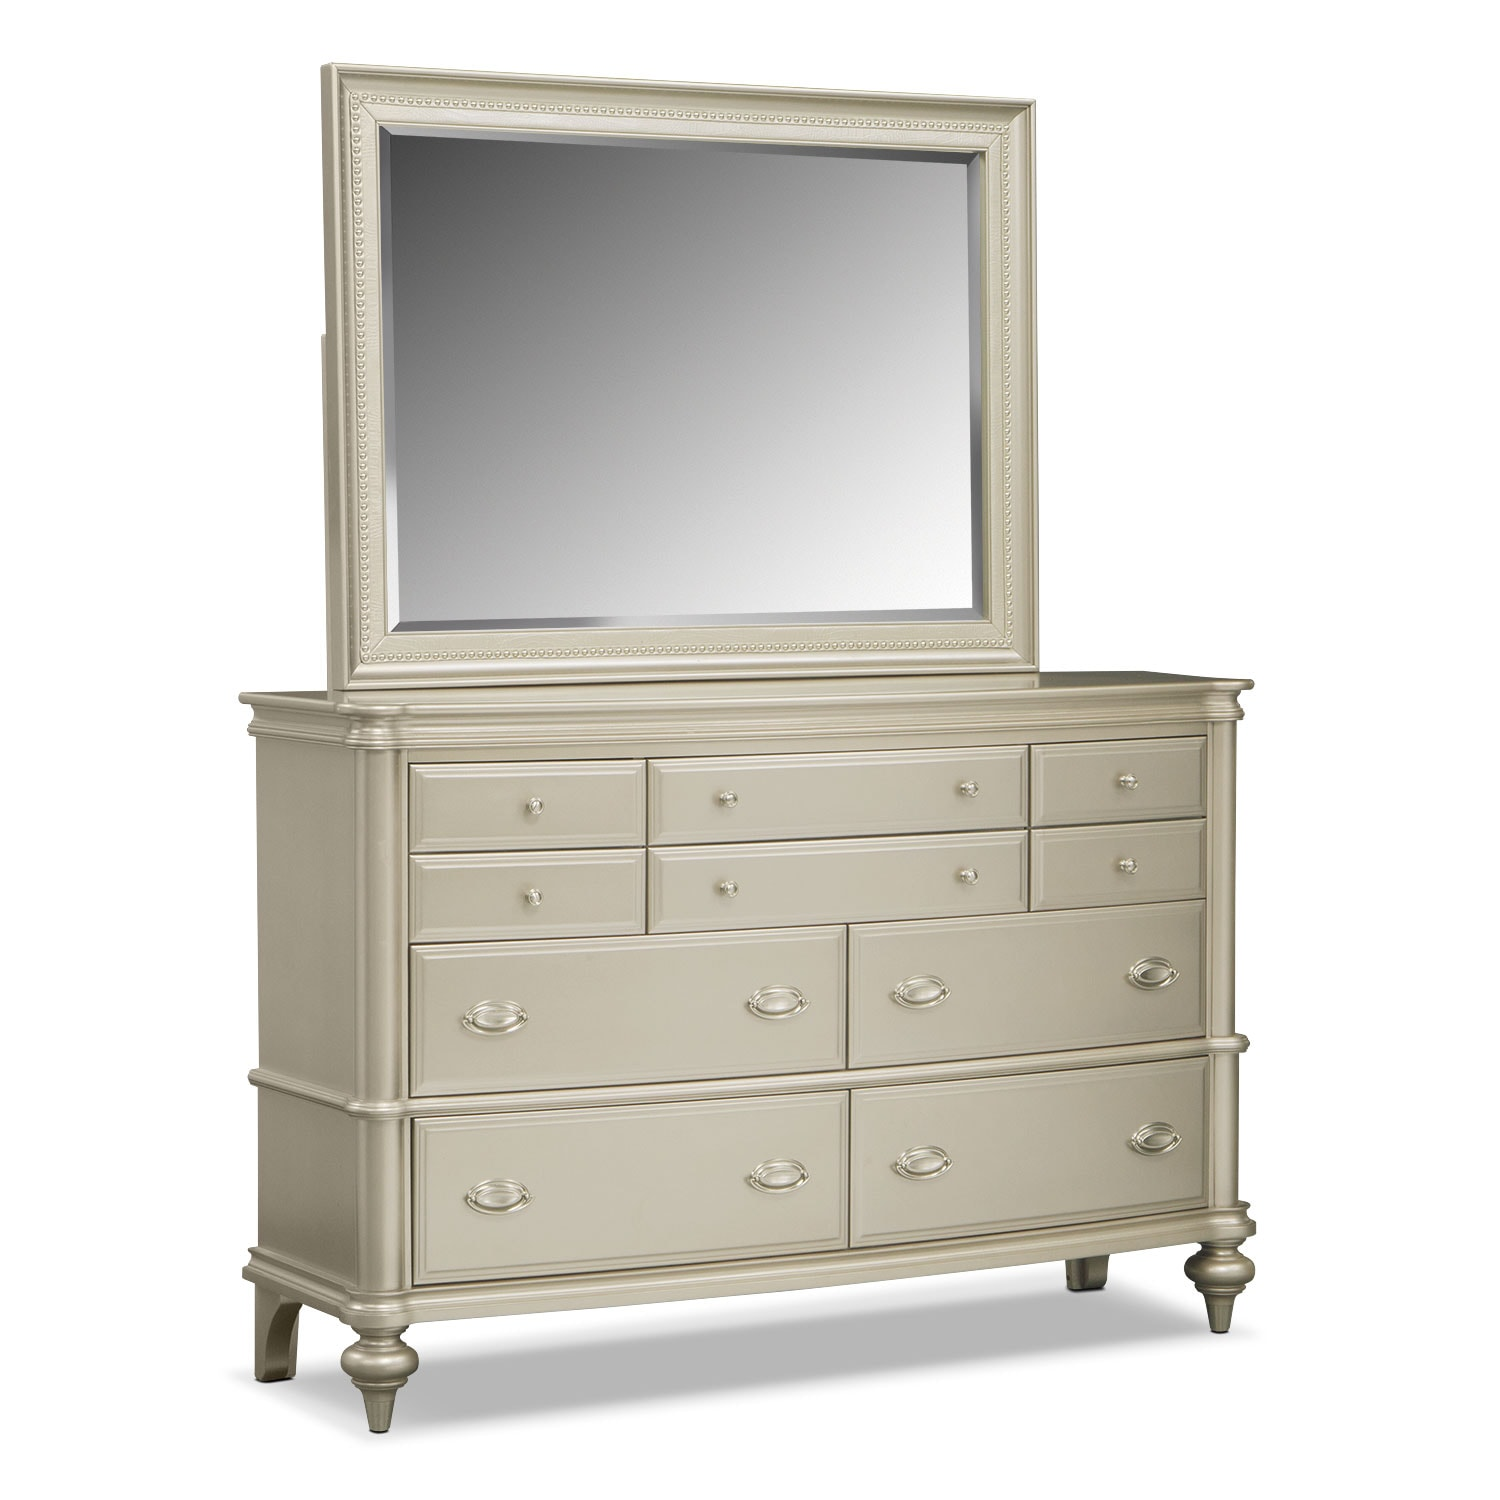 Bedroom Furniture - Esquire Dresser and Mirror